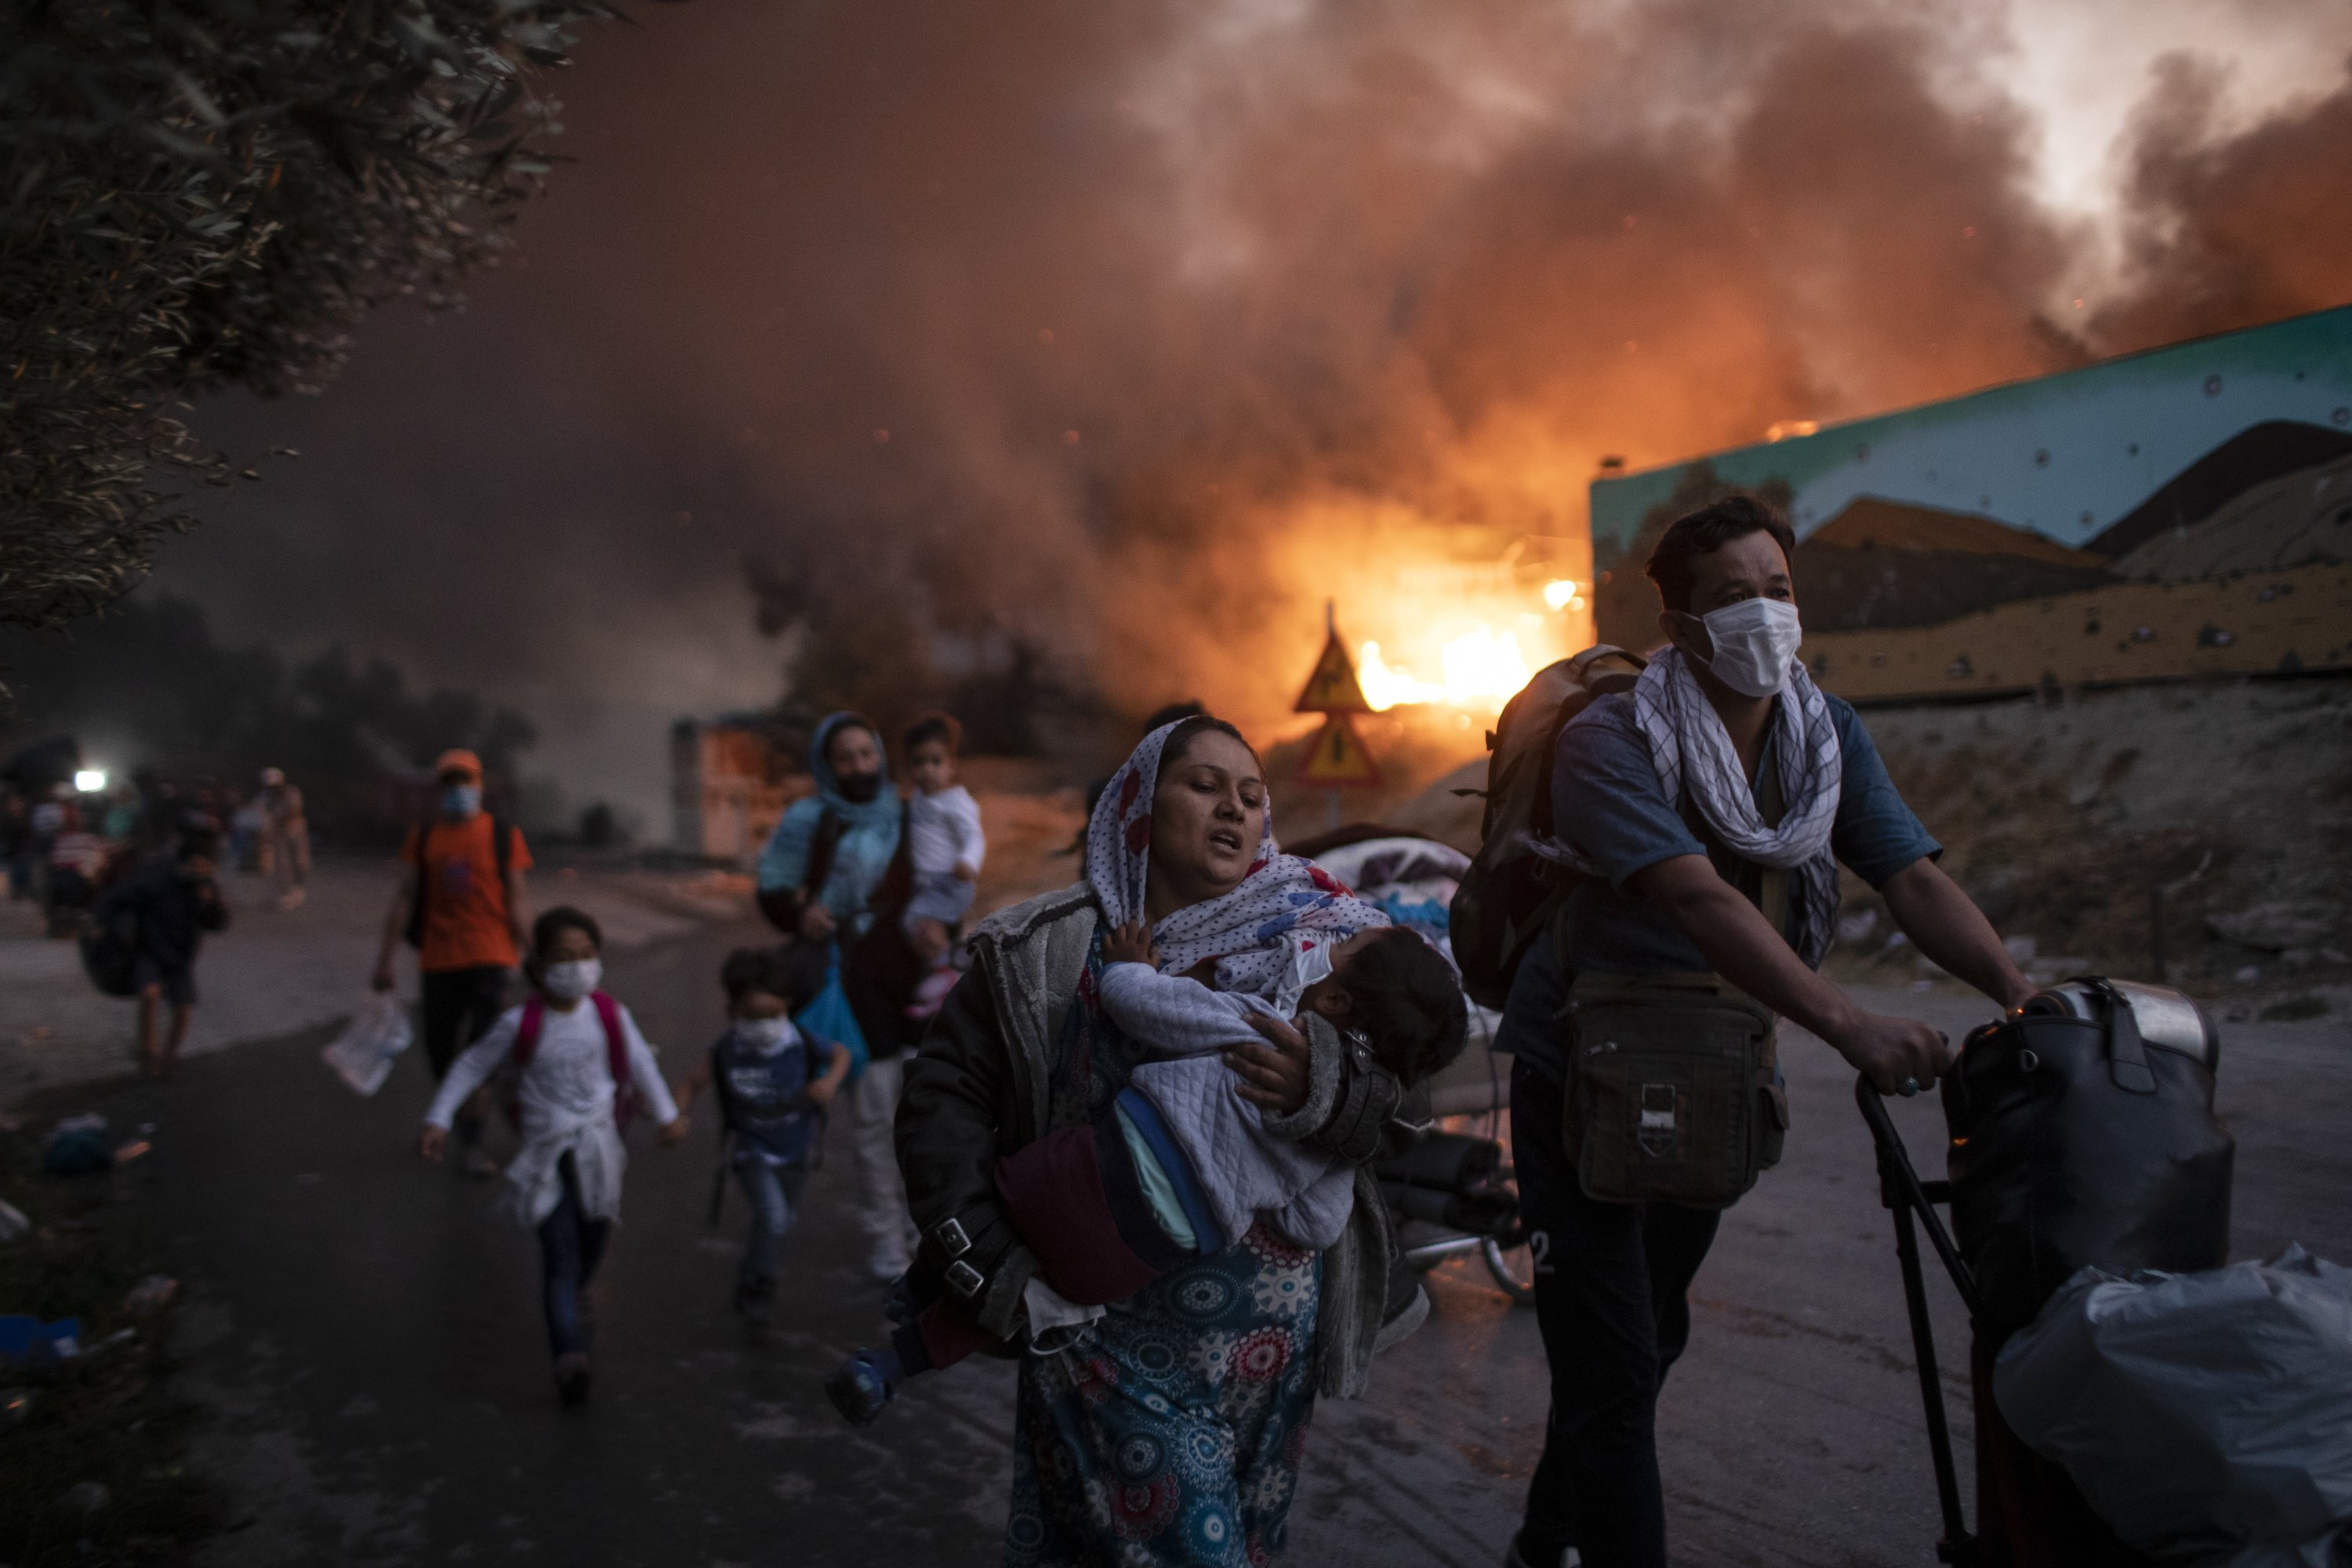 Refugees and migrants carrying their belongings flee a fire burning at the Moria camp on the northeastern Aegean island of Lesbos, Greece, Sept. 9, 2020. (AP Photo)